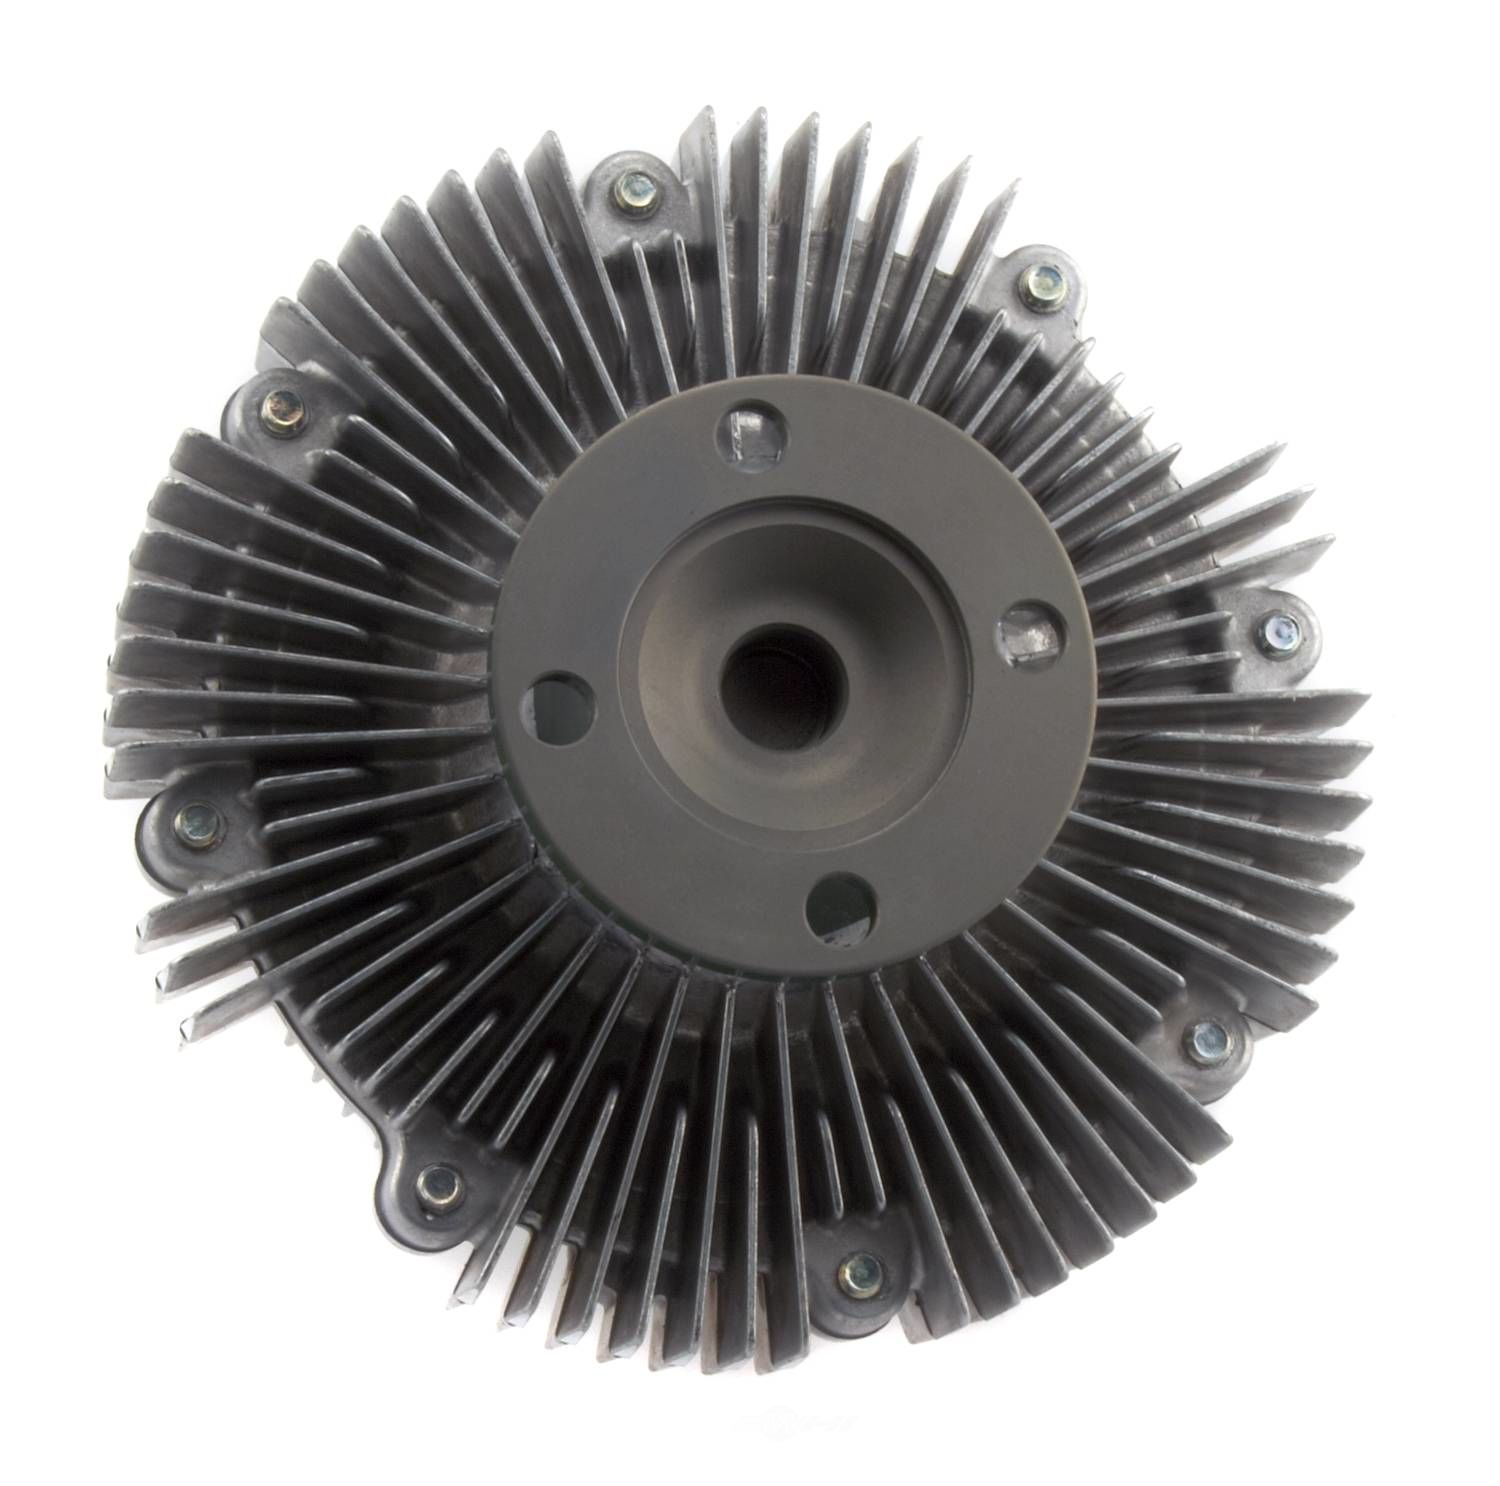 AISIN WORLD CORP. OF AMERICA - Engine Cooling Fan Clutch - AIS FCT-013